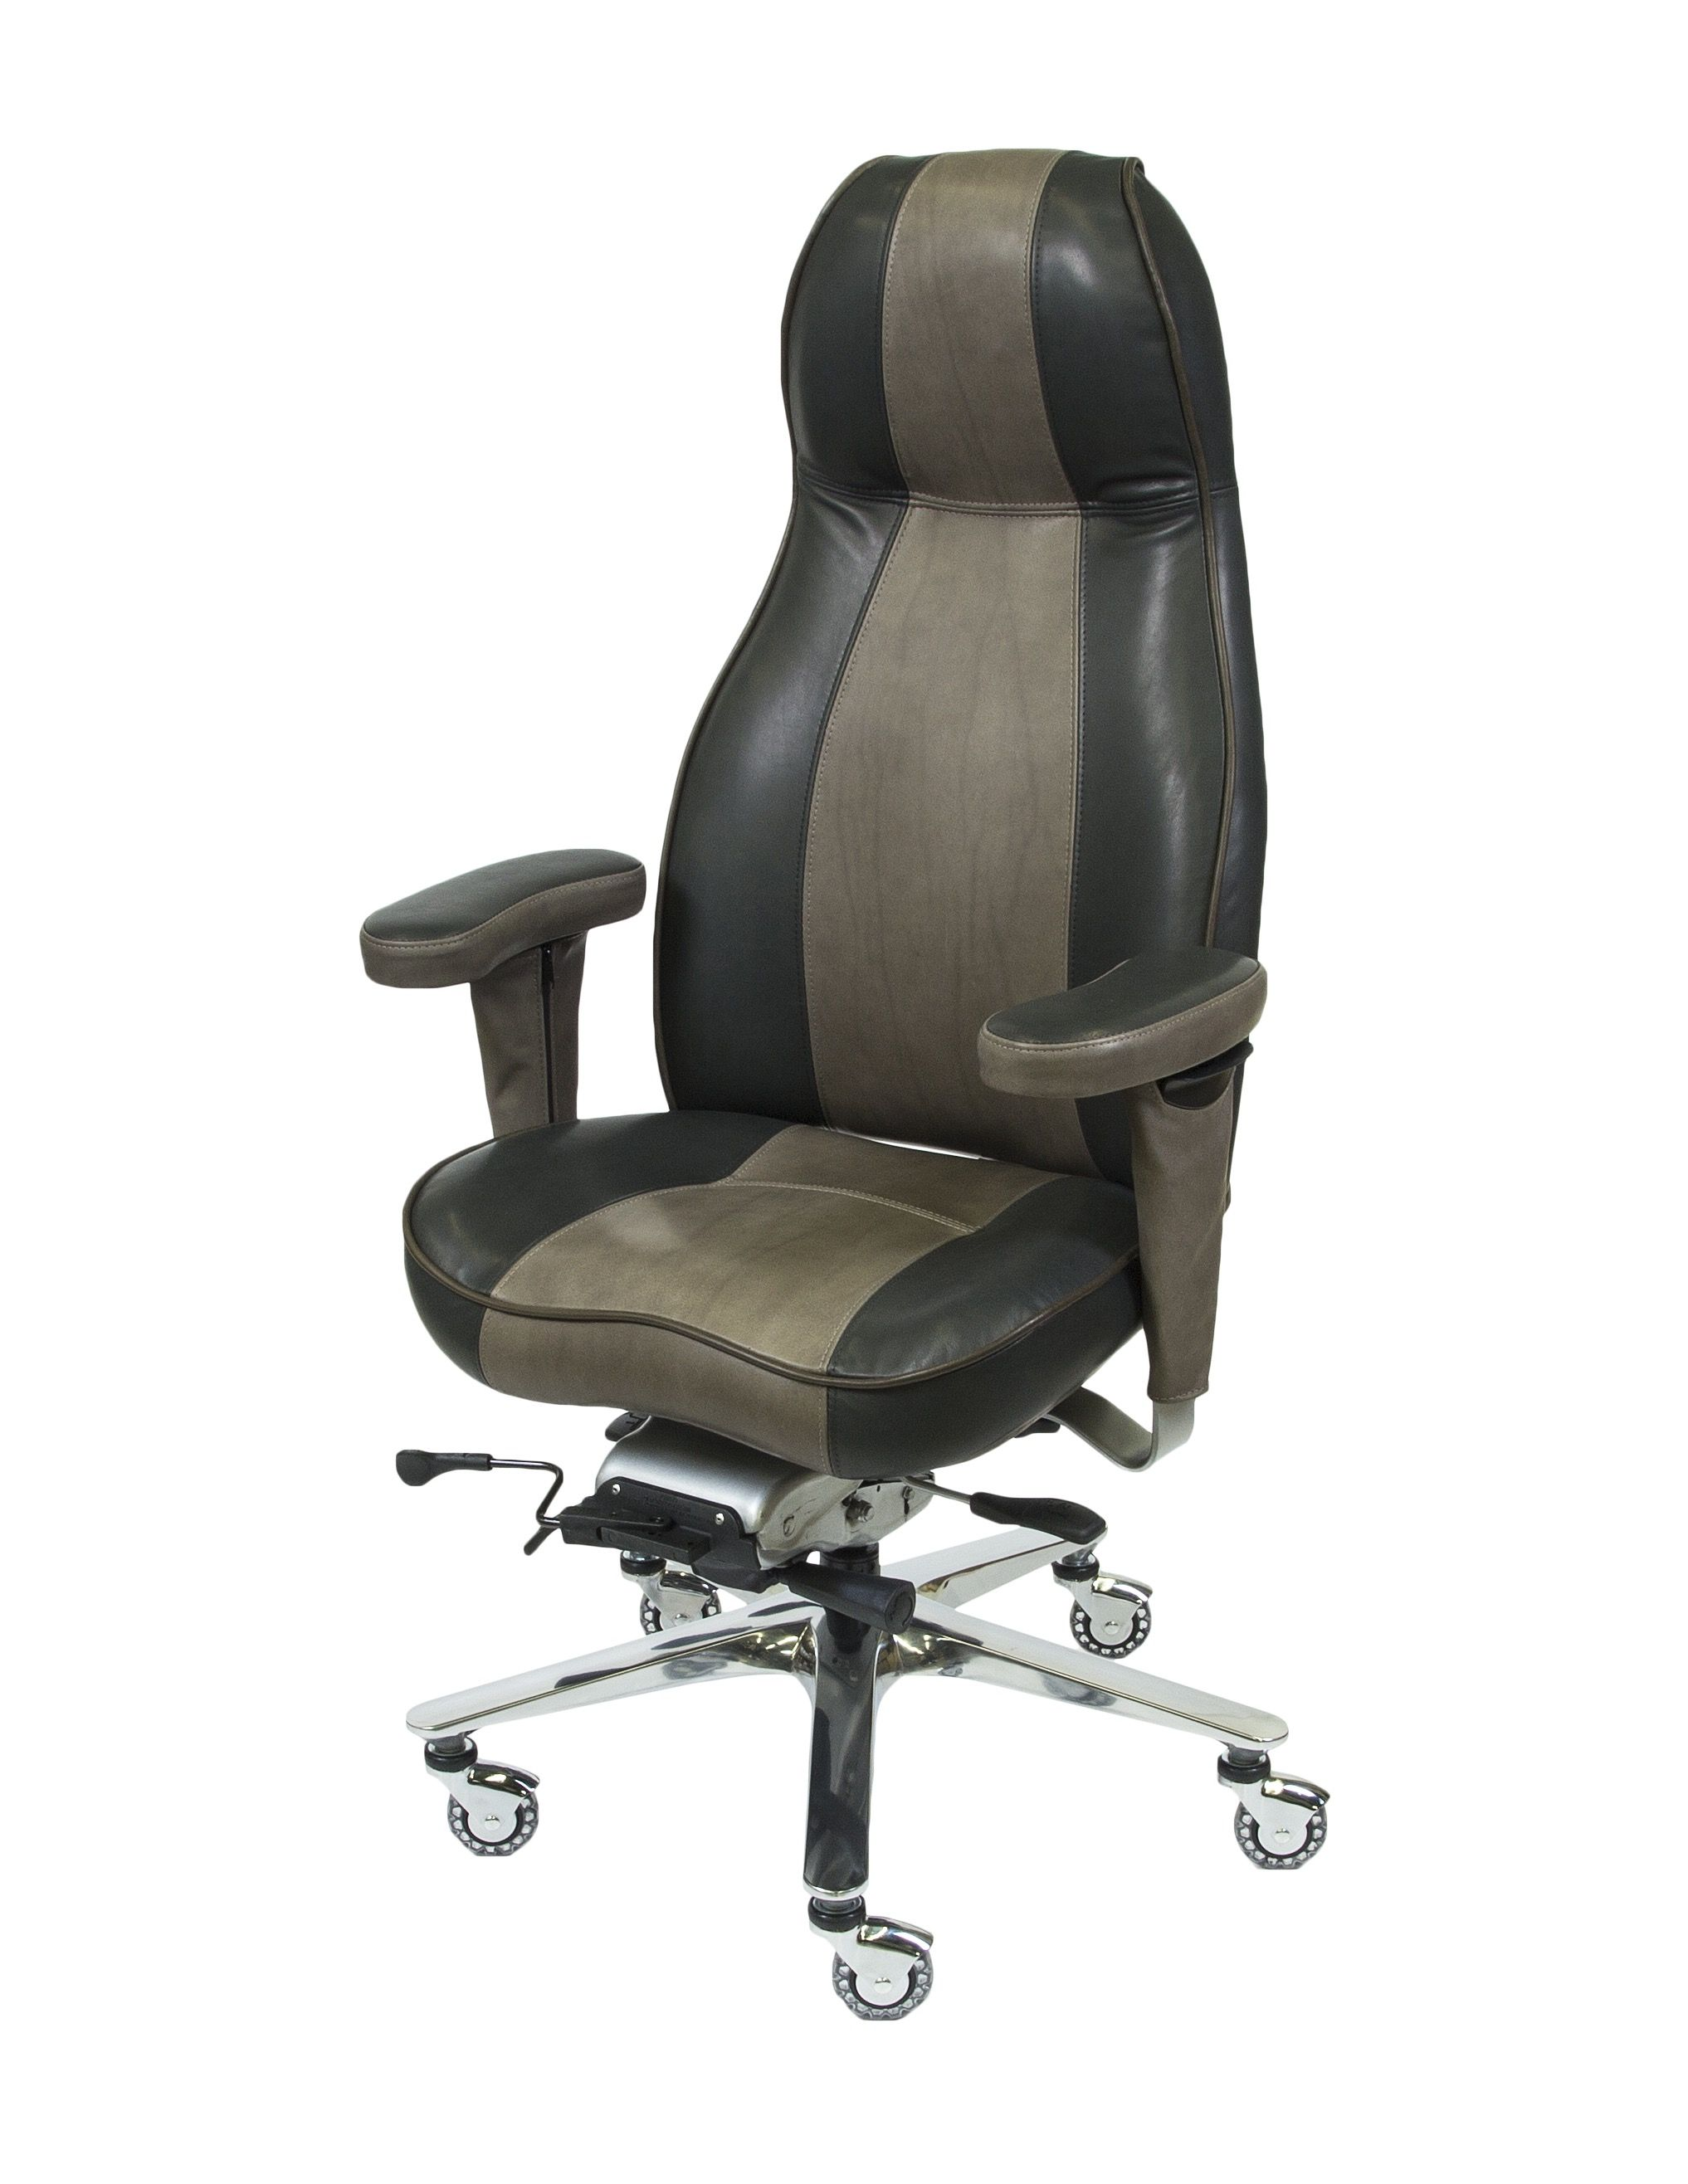 president office chair. Increase Productivity With The Lifeform Ultimate High Back Executive Office Chair That Allows You To Comfortably Sit \u0026 Work Longer. President